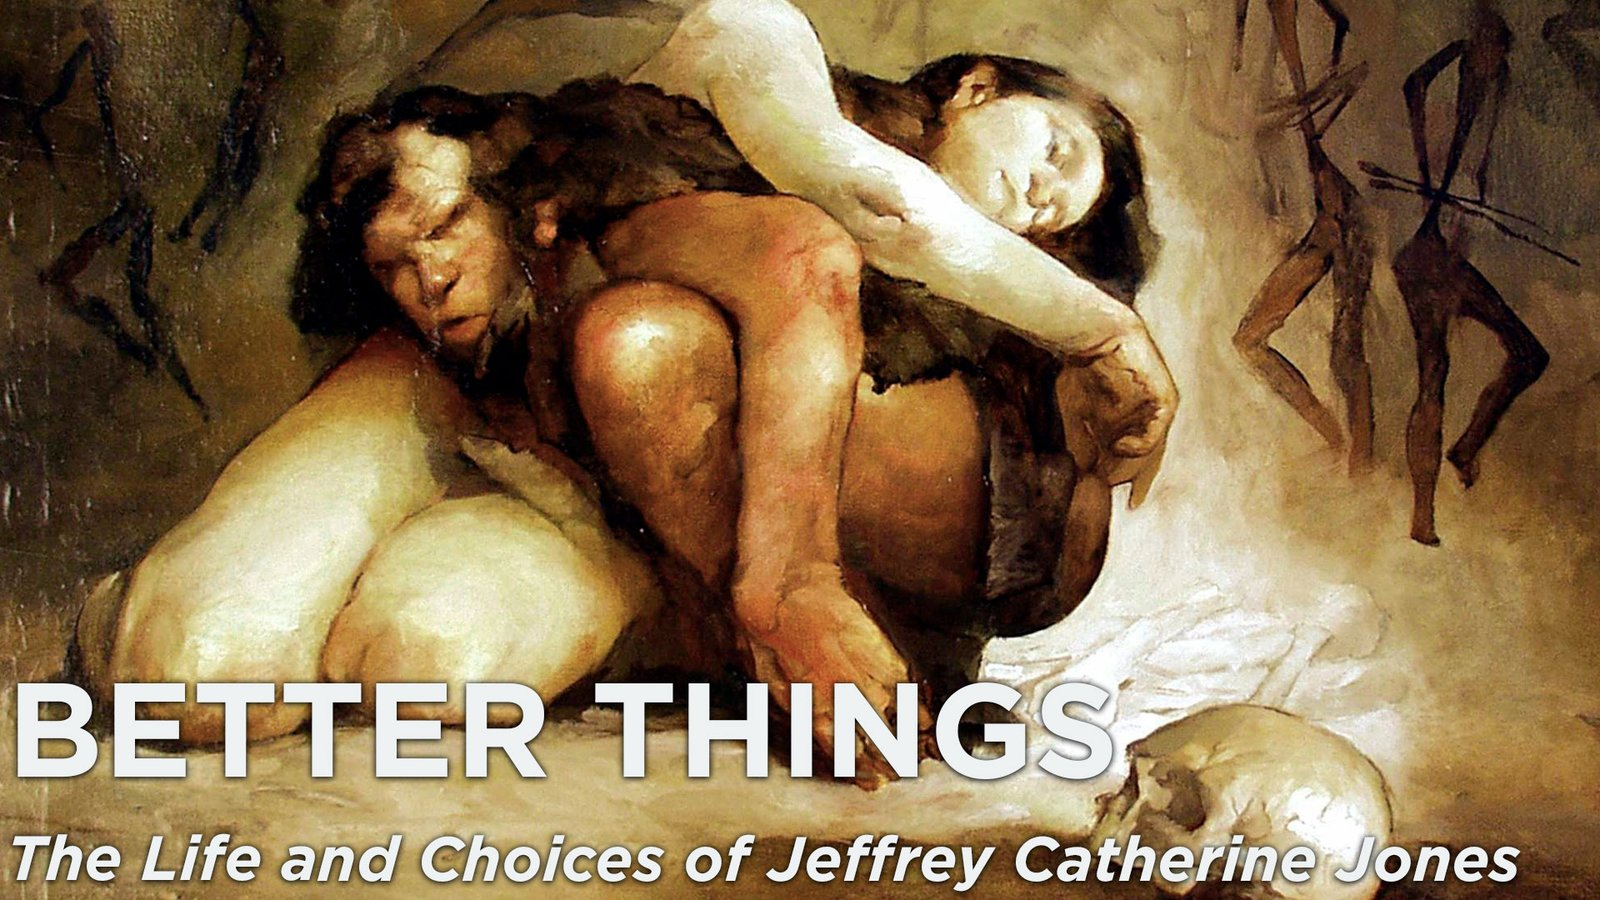 Better Things - The Life and Choices of Jeffrey Catherine Jones